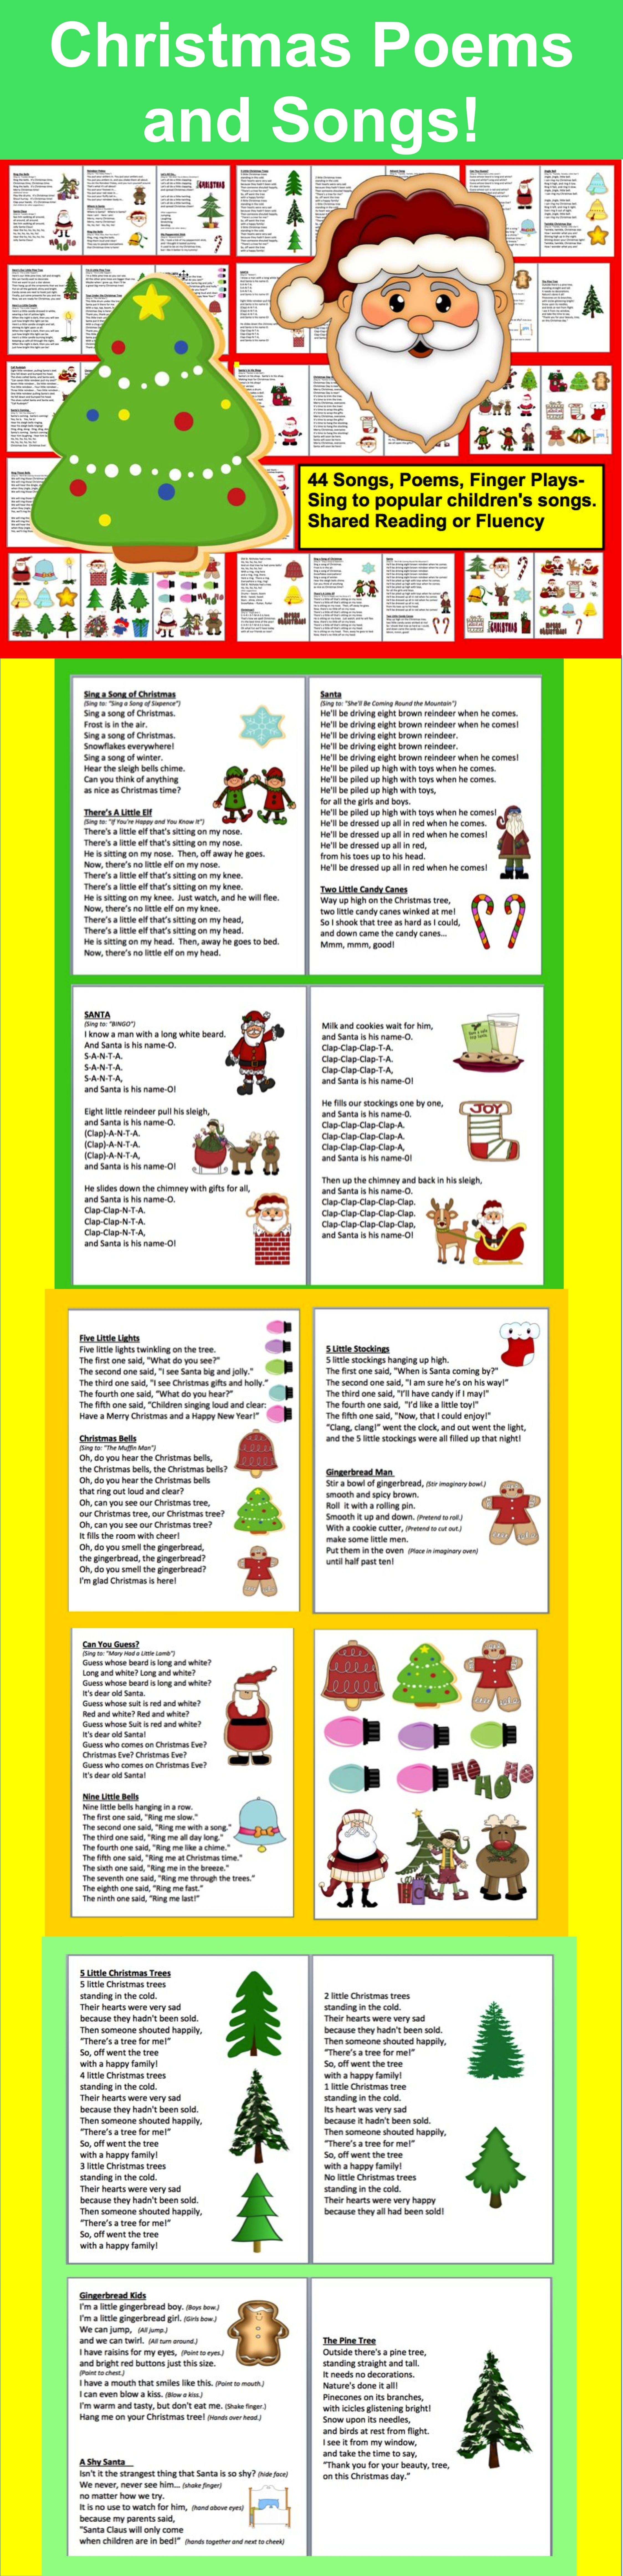 Christmas Activities Poems Songs And Finger Plays For Shared Reading Fluency Actividades De Ingles Actividades Navideno